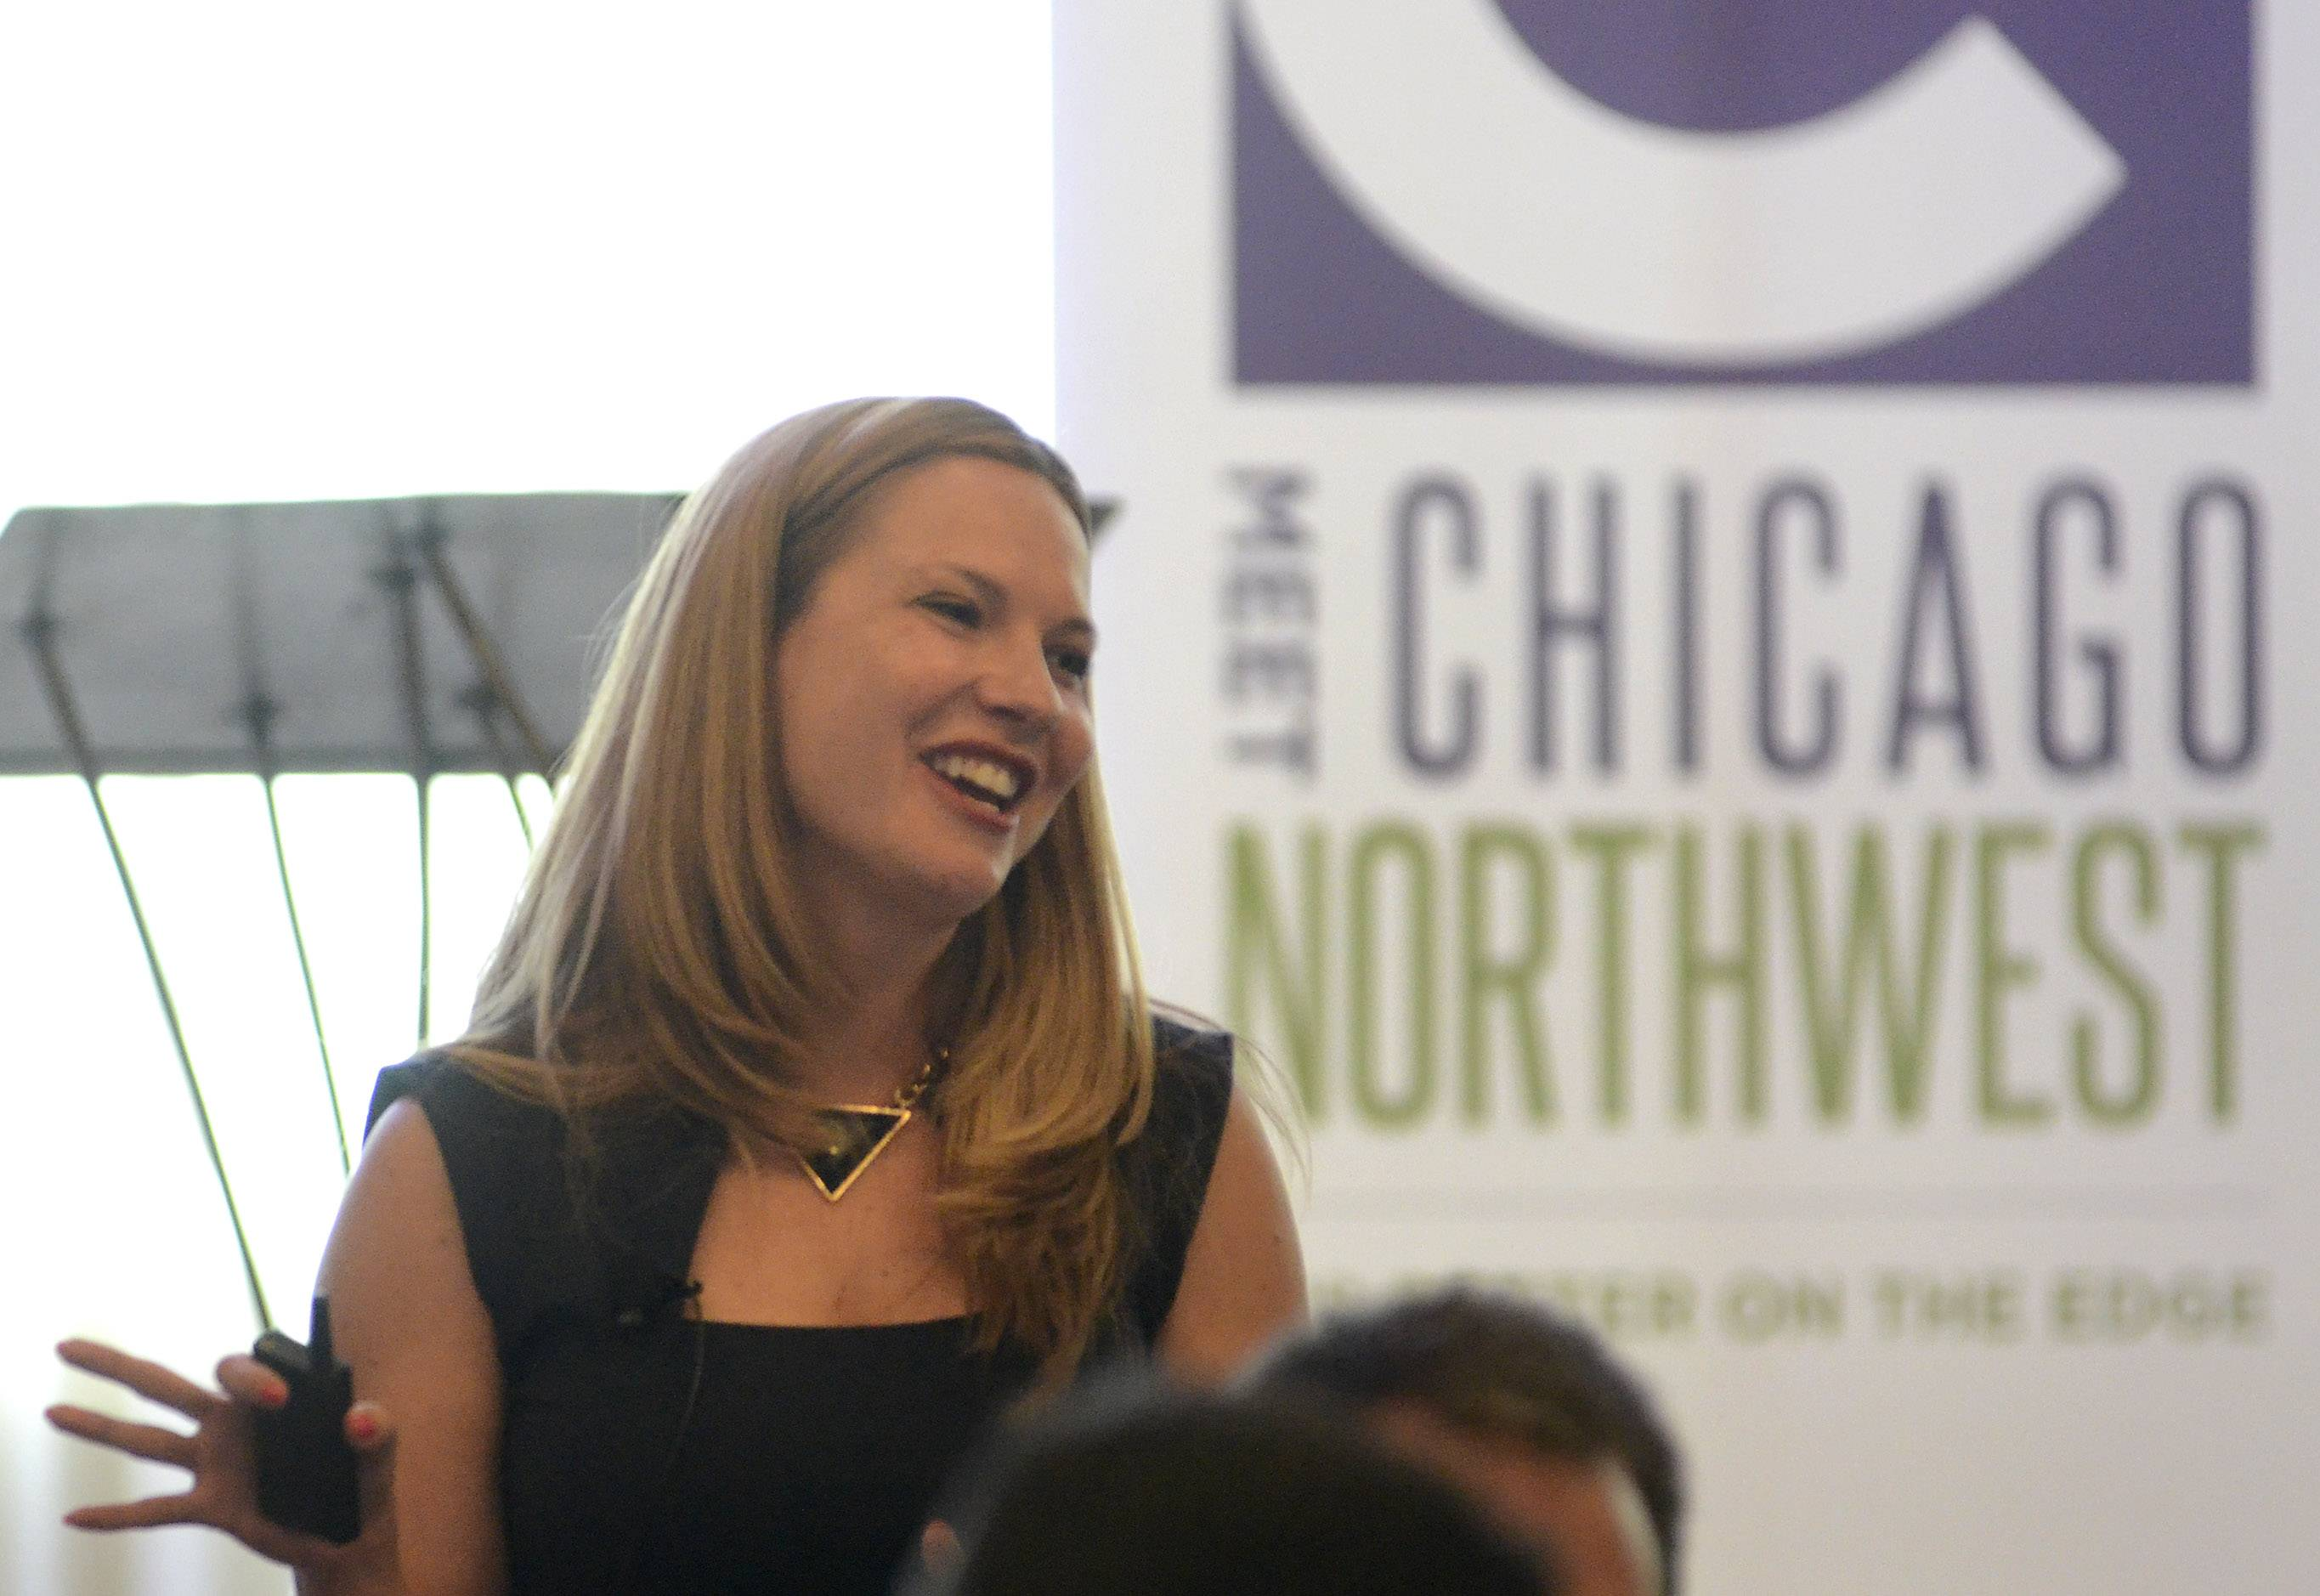 Guest presenter Jen Hoelzle, deputy director of the Illinois Office of Tourism, discusses the state's efforts to attract visitors during the annual luncheon of Meet Chicago Northwest in Elk Grove Village Wednesday.